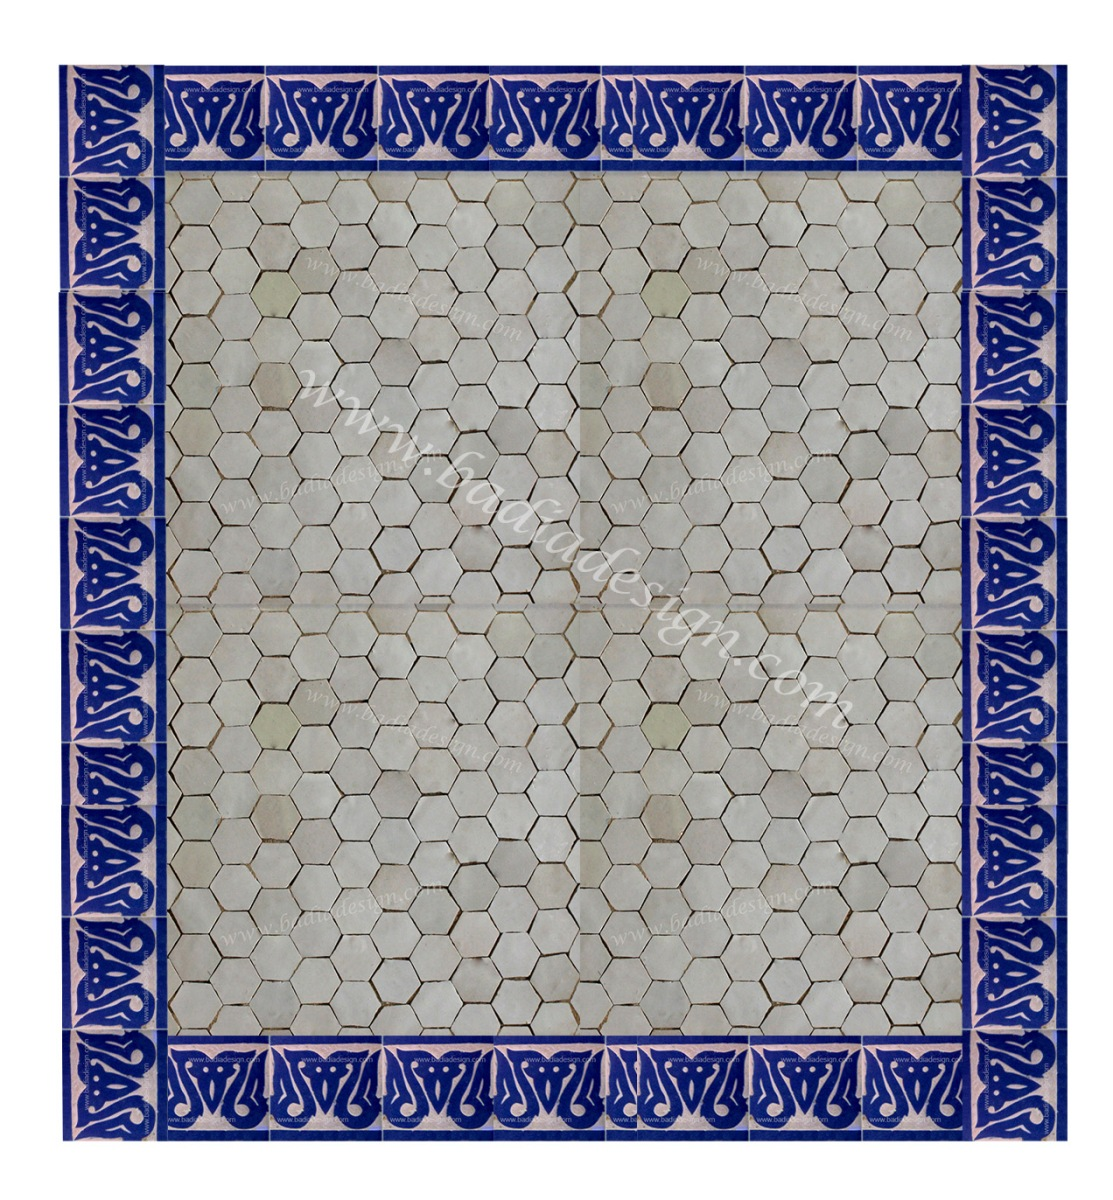 Moroccan tile design ideas los angeles moroccan furniture los moroccan tile design ideas los angeles moroccan furniture los angeles dailygadgetfo Image collections